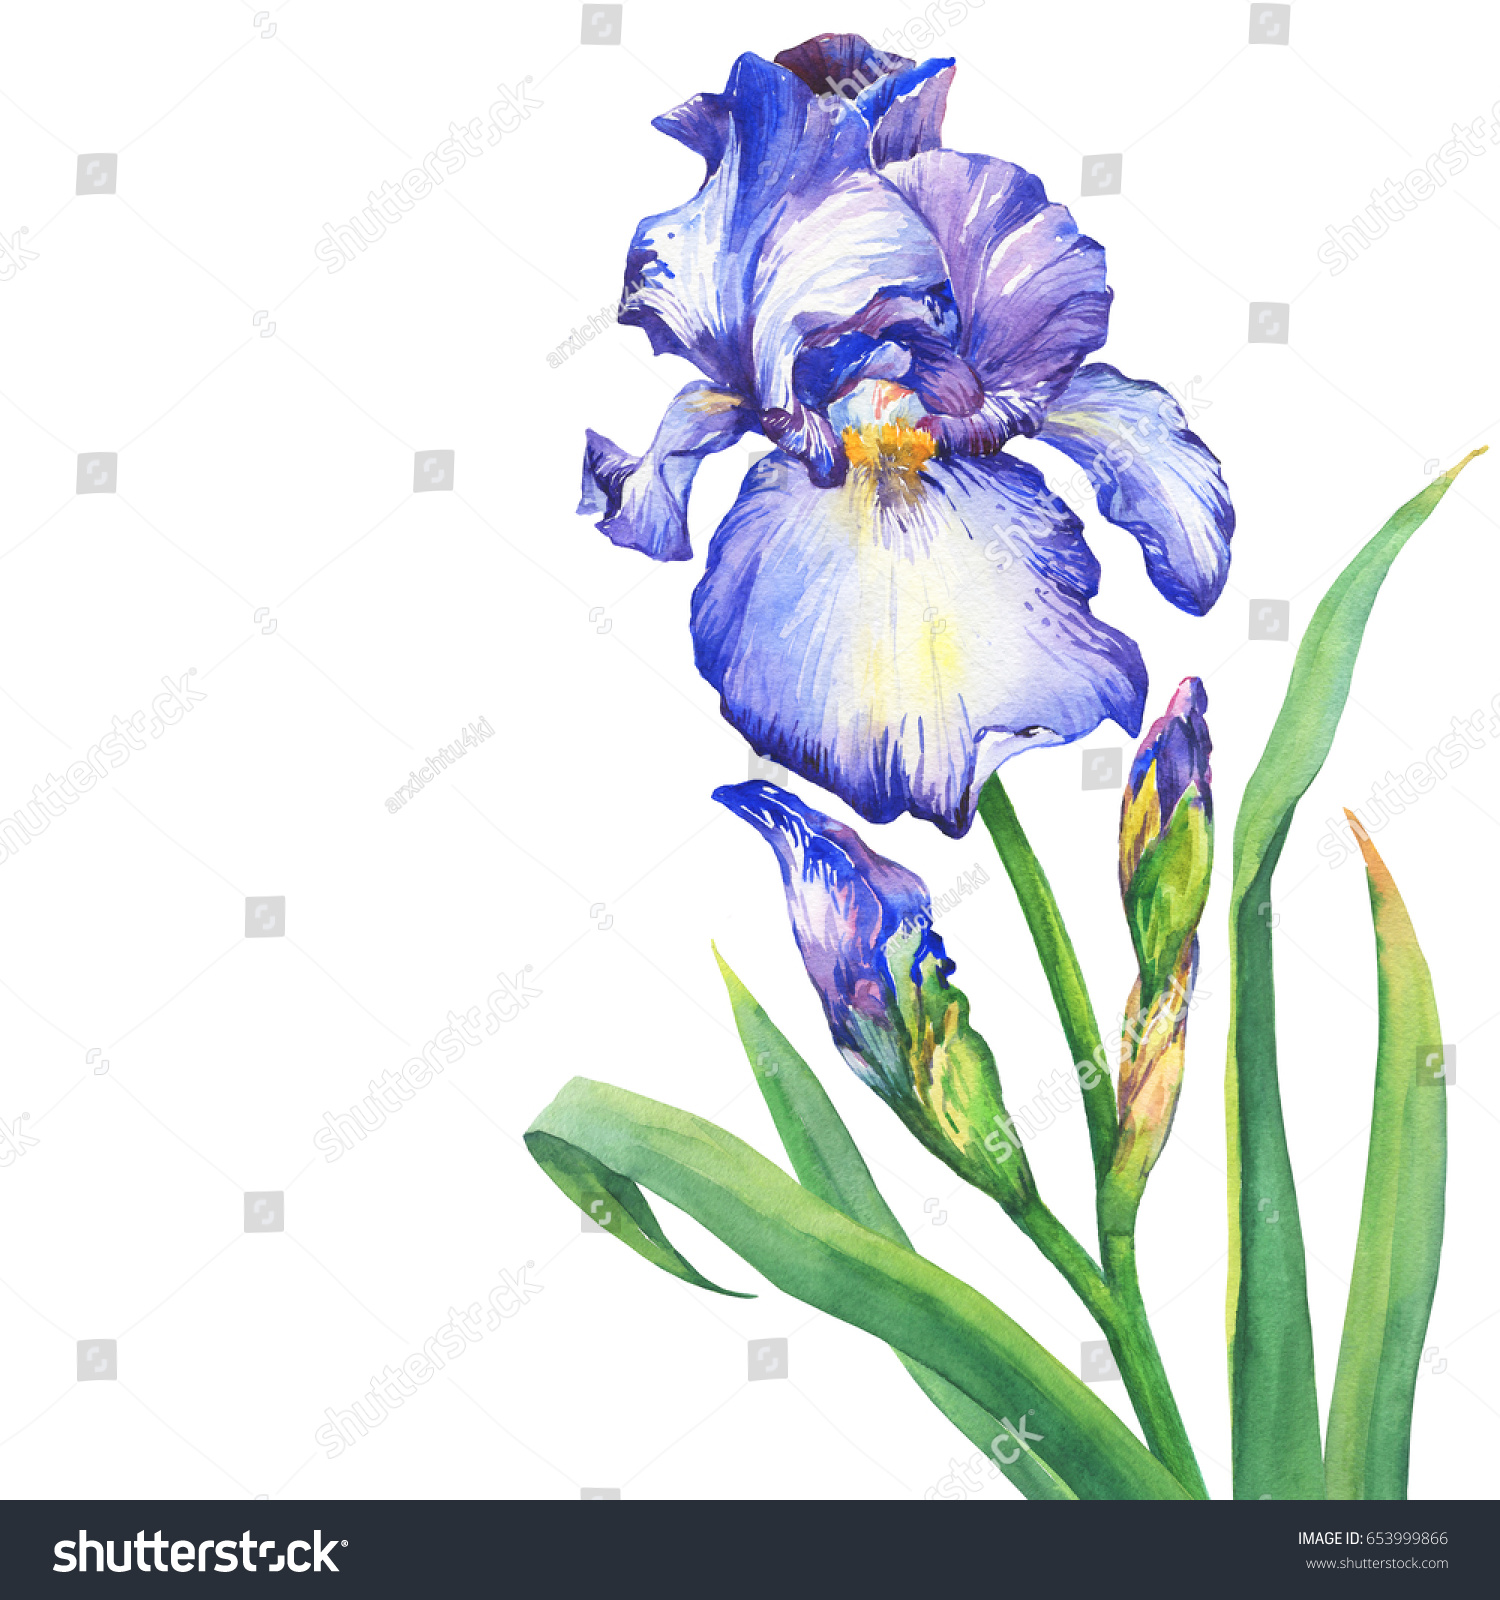 Branch flowering blue iris bud watercolor stock illustration the branch flowering blue iris with bud watercolor hand drawn painting illustration isolated on izmirmasajfo